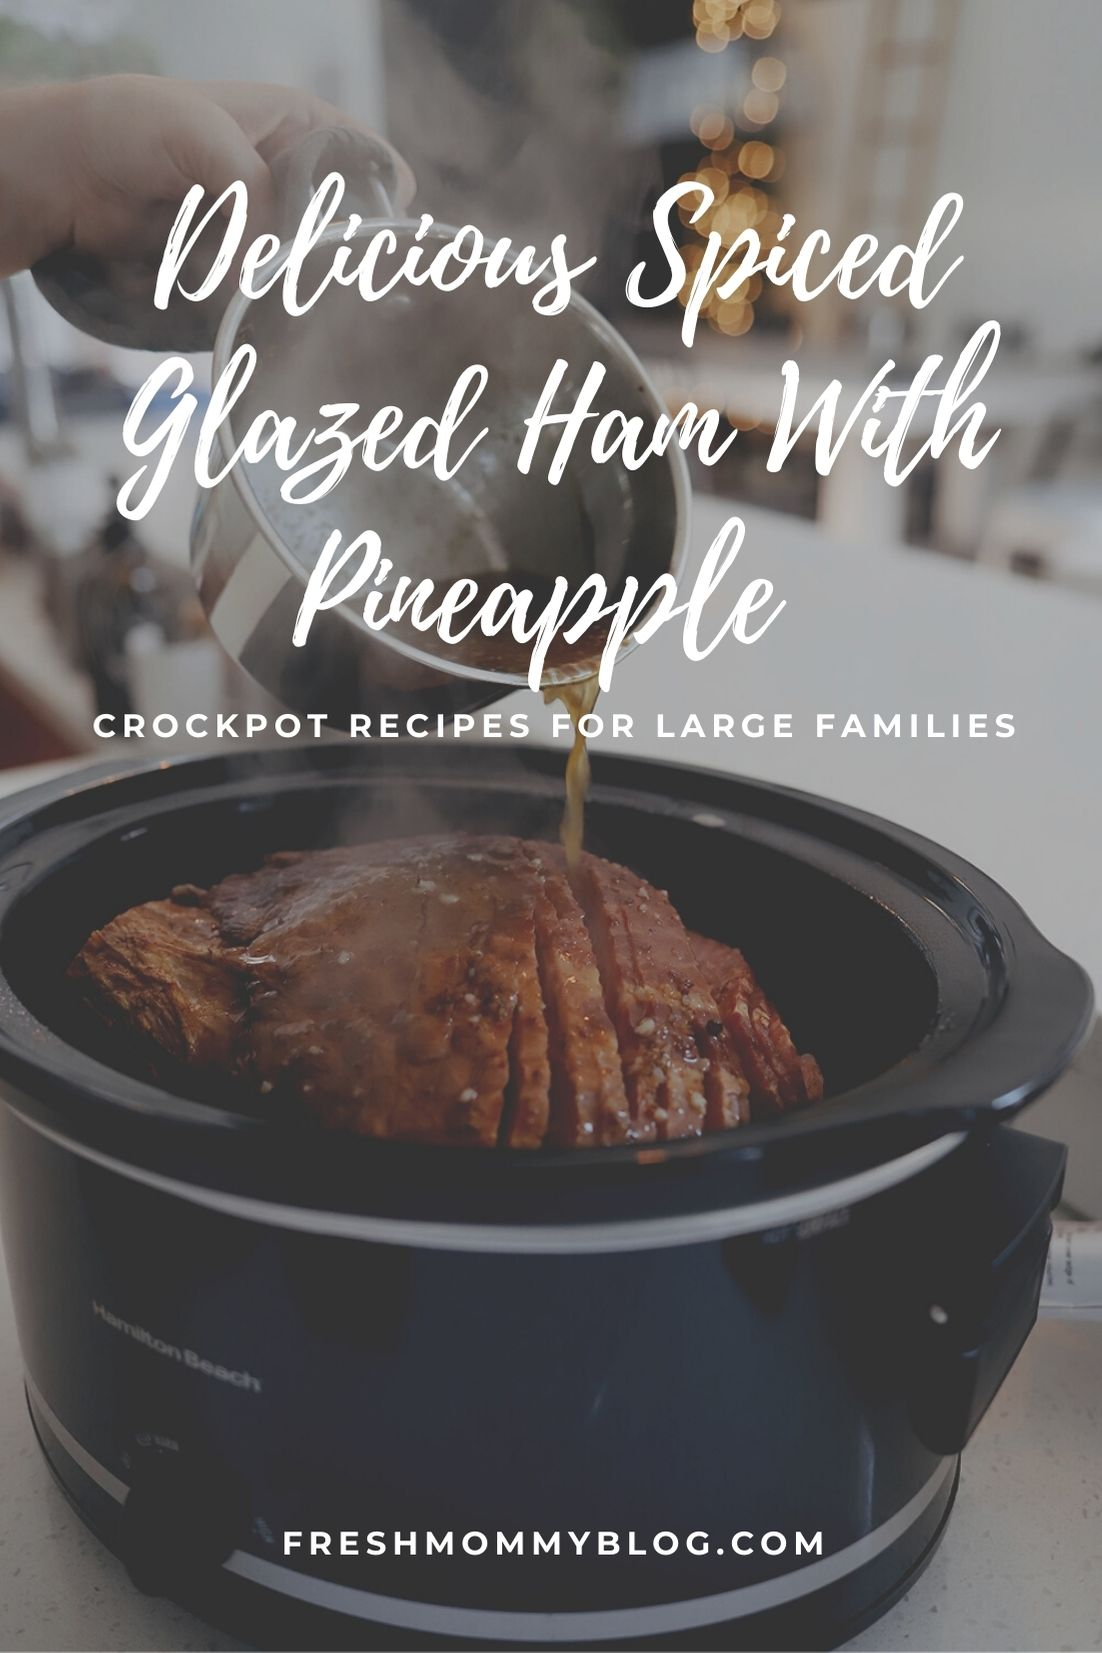 Delicious Spiced Glazed Ham With Pineapple in the Slow Cooker. Holiday Family Crockpot Meals. Christmas dinner idea